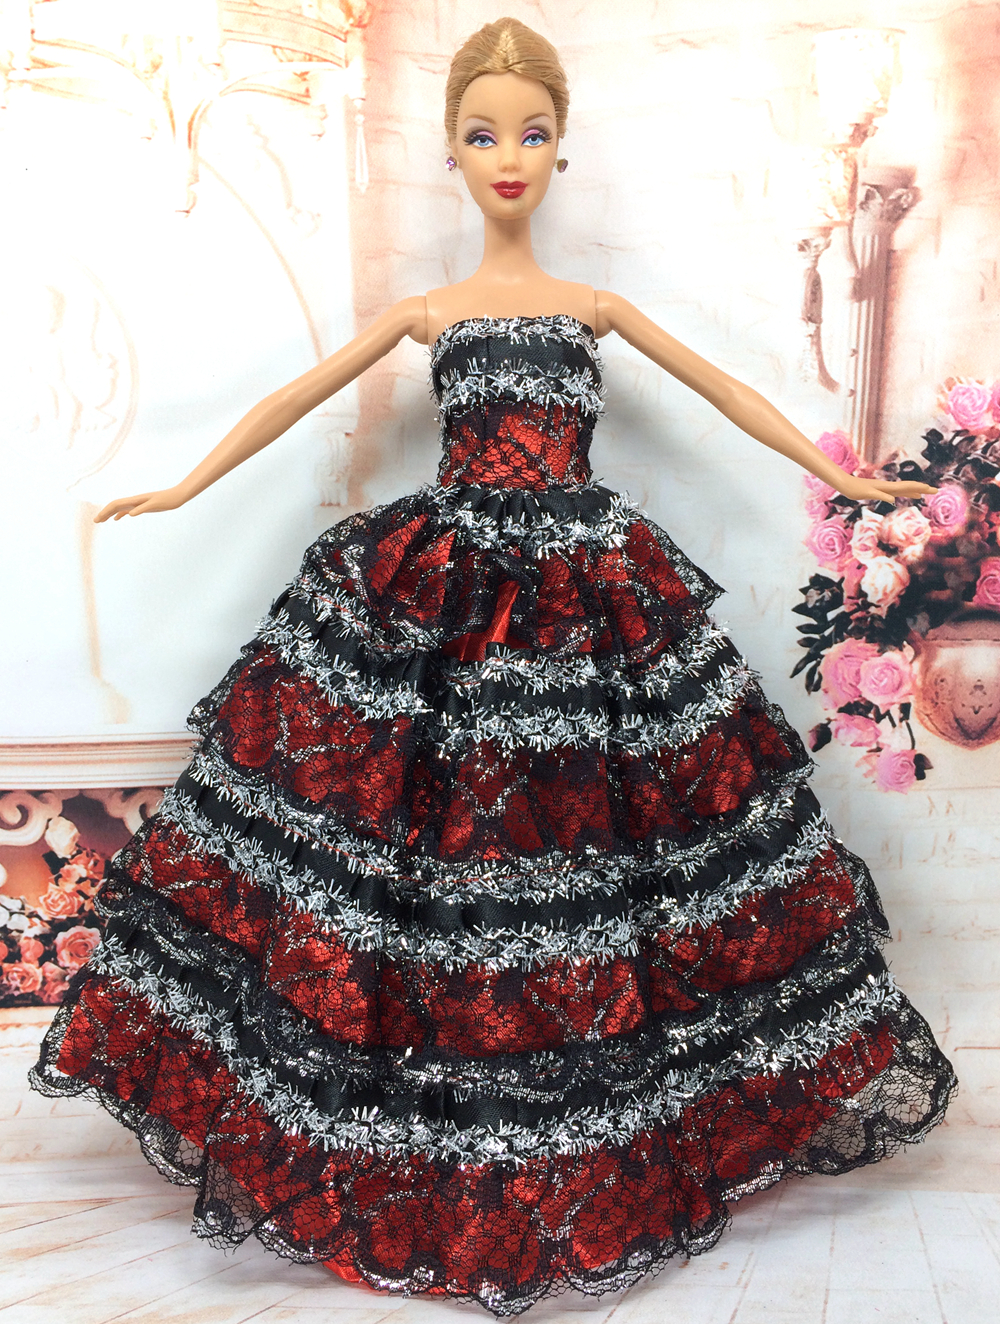 NK One Pcs Handmade Princess Wedding Dress Noble Party Gown For Barbie Doll Fashion Design Outfit Best Gift For Girl' Doll 037A